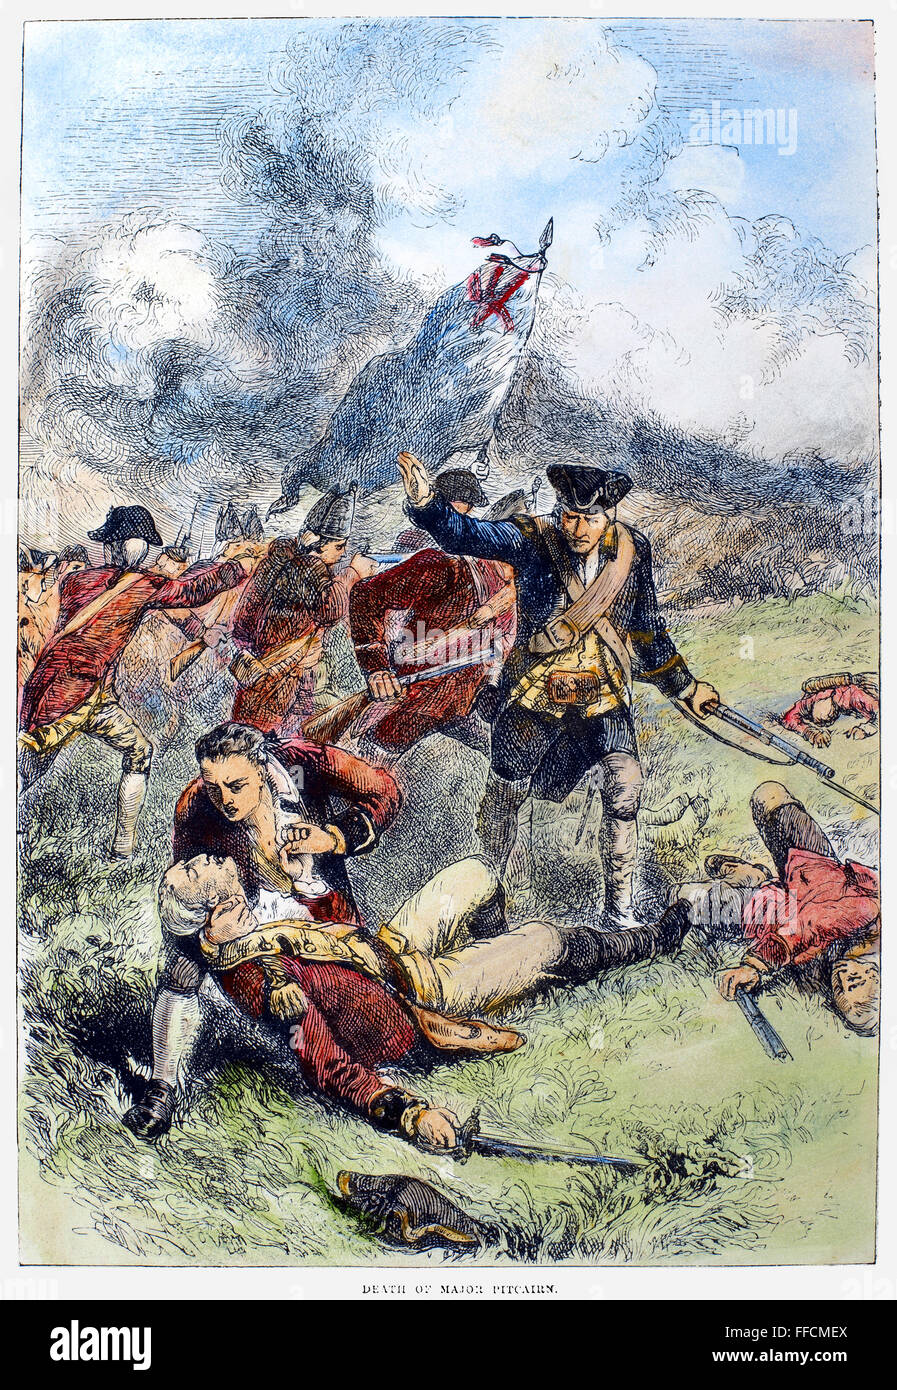 account of the battle of bunker hill during the american revolution The true story of the battle of bunker hill  he revisits the beginnings of the american revolution,  which is why the bunker hill battle is pivotal the chaotic skirmishing at lexington and.